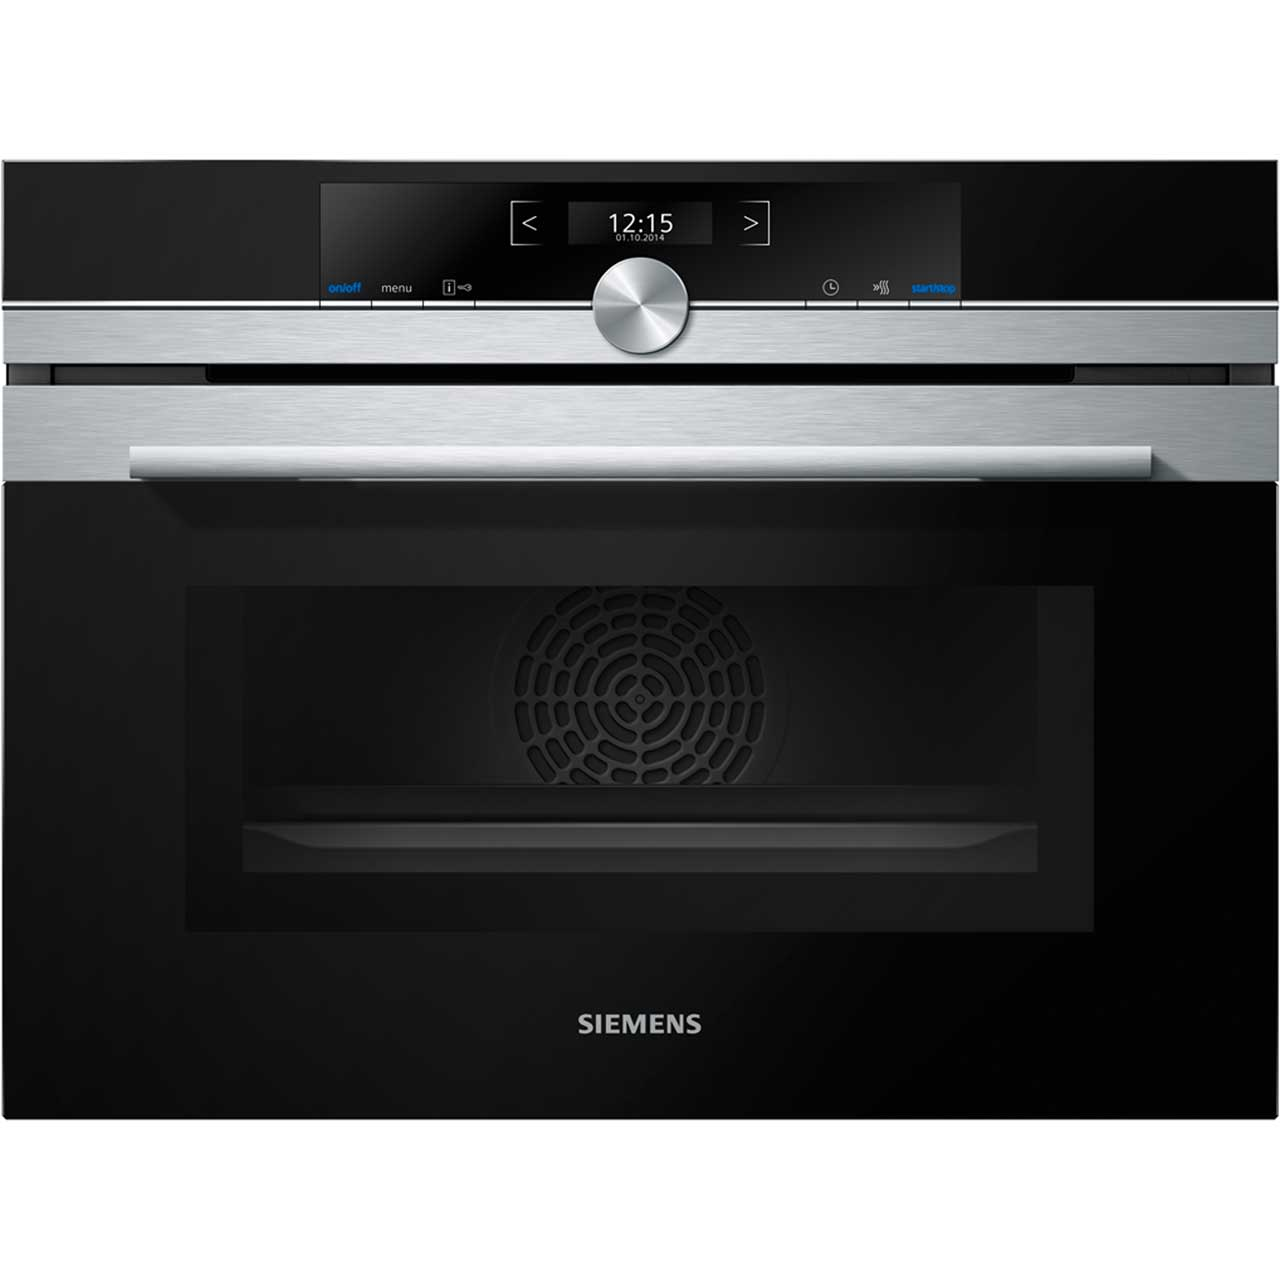 Boots Kitchen Appliances Microwaves